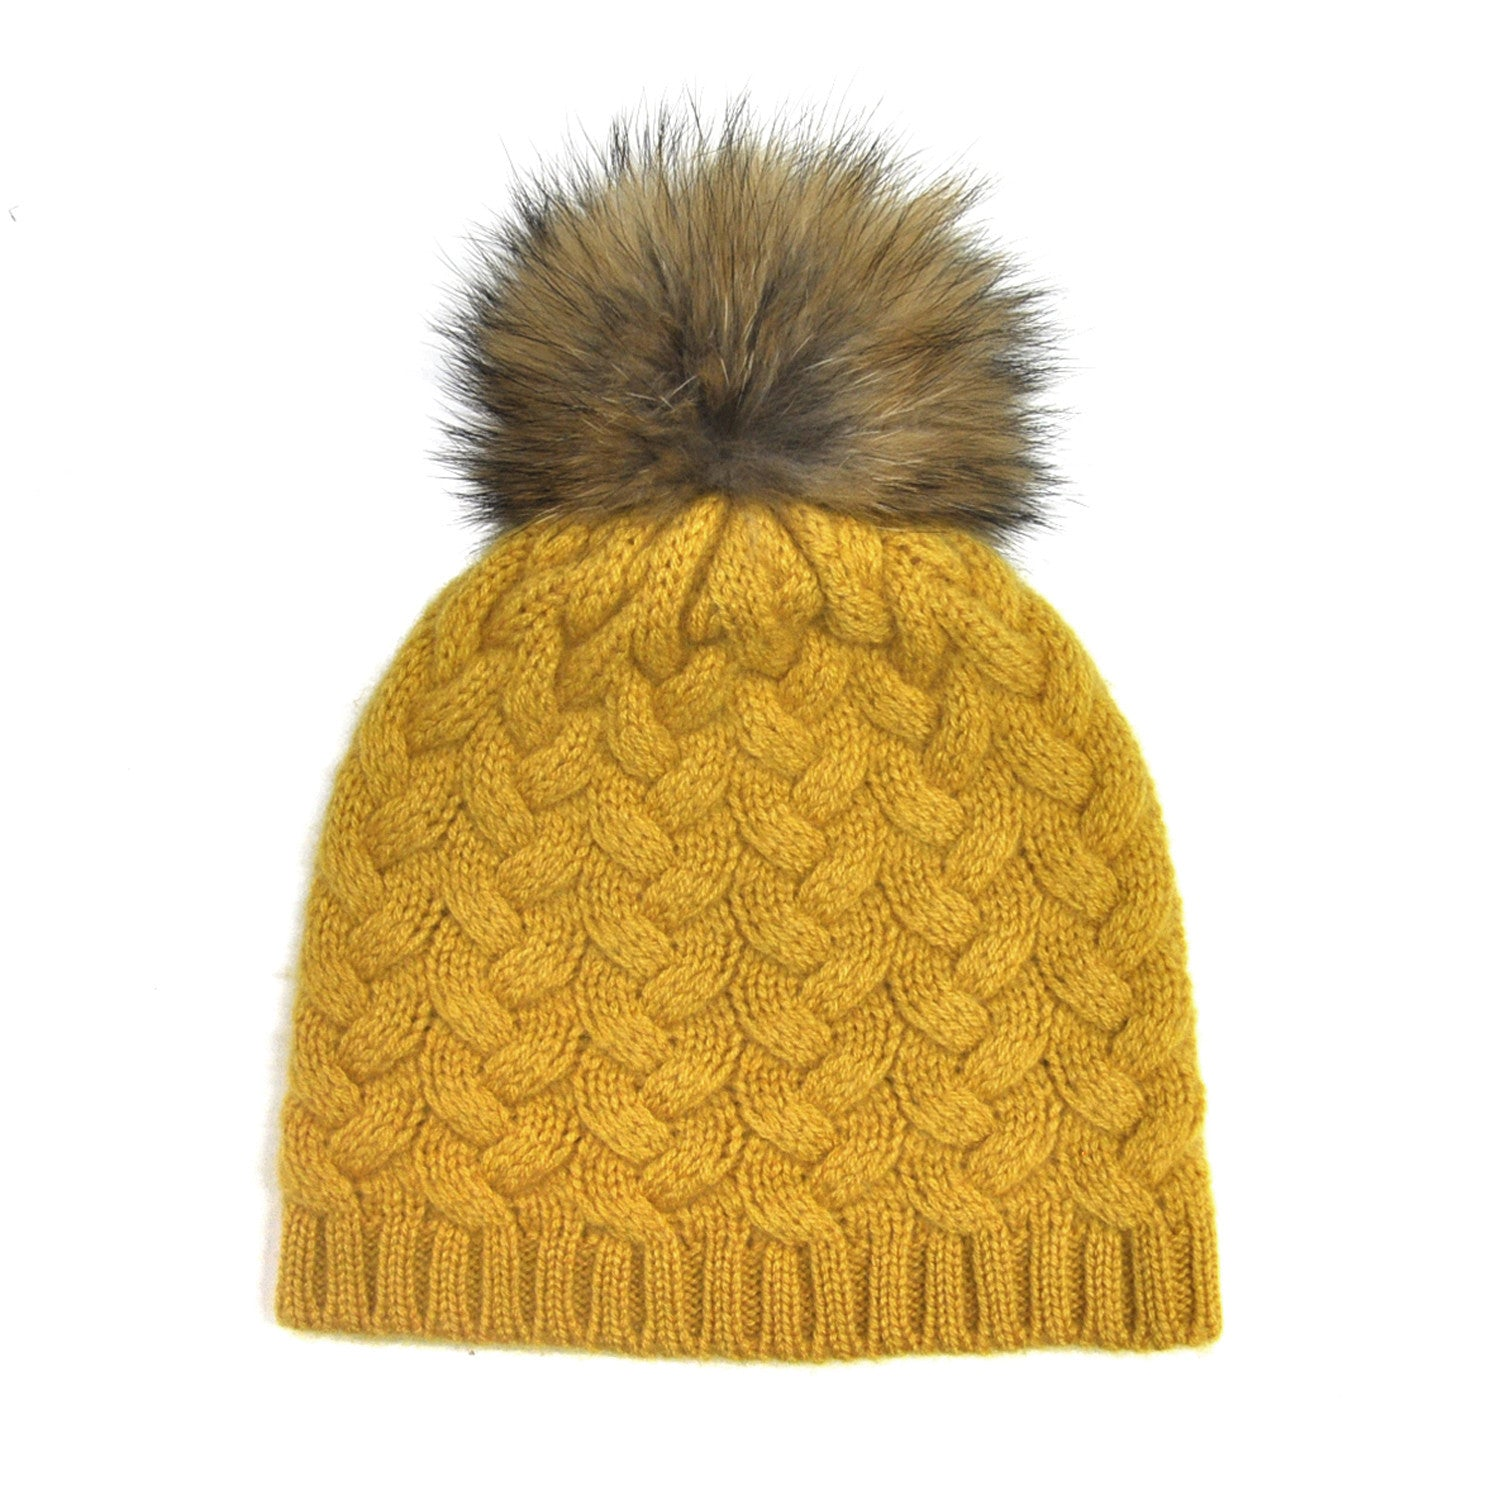 4c3155a7a66 Cashmere Cable Hat with Racoon Pom Pom - Mustard Childrens Hat JAM London